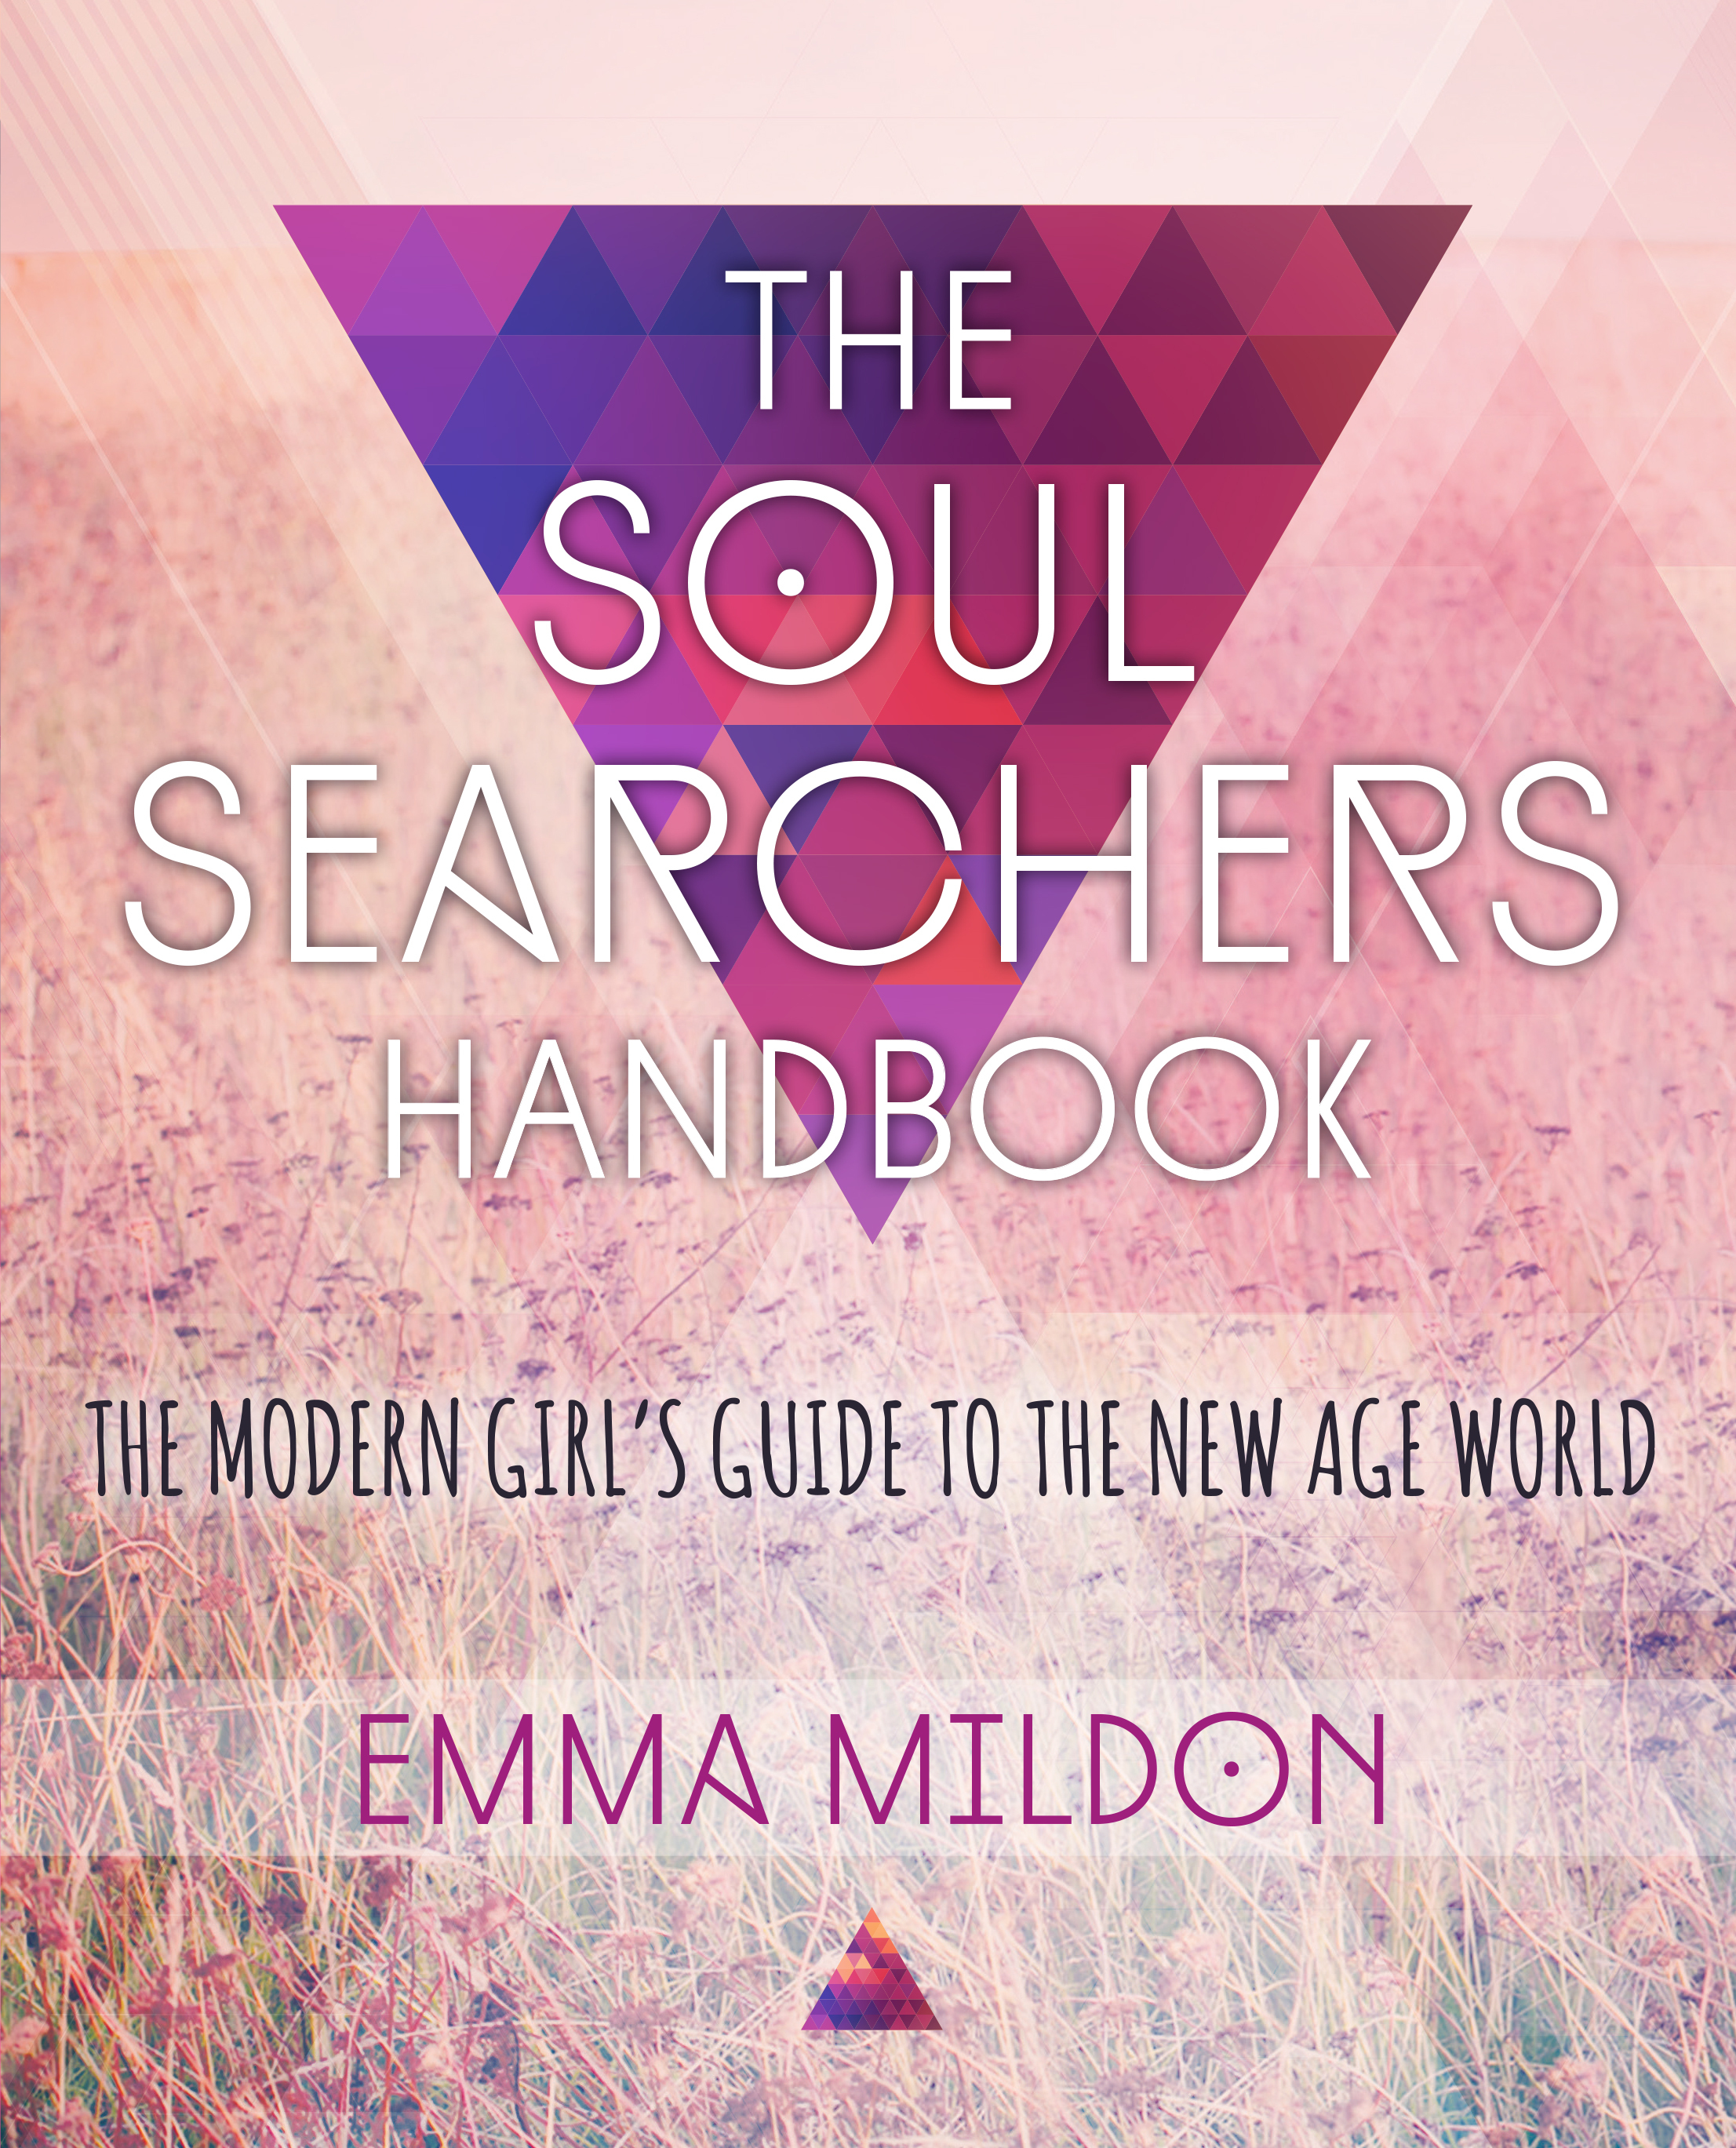 The Soul Searcher's Handbook A Modern Girl's Guide to the New Age World